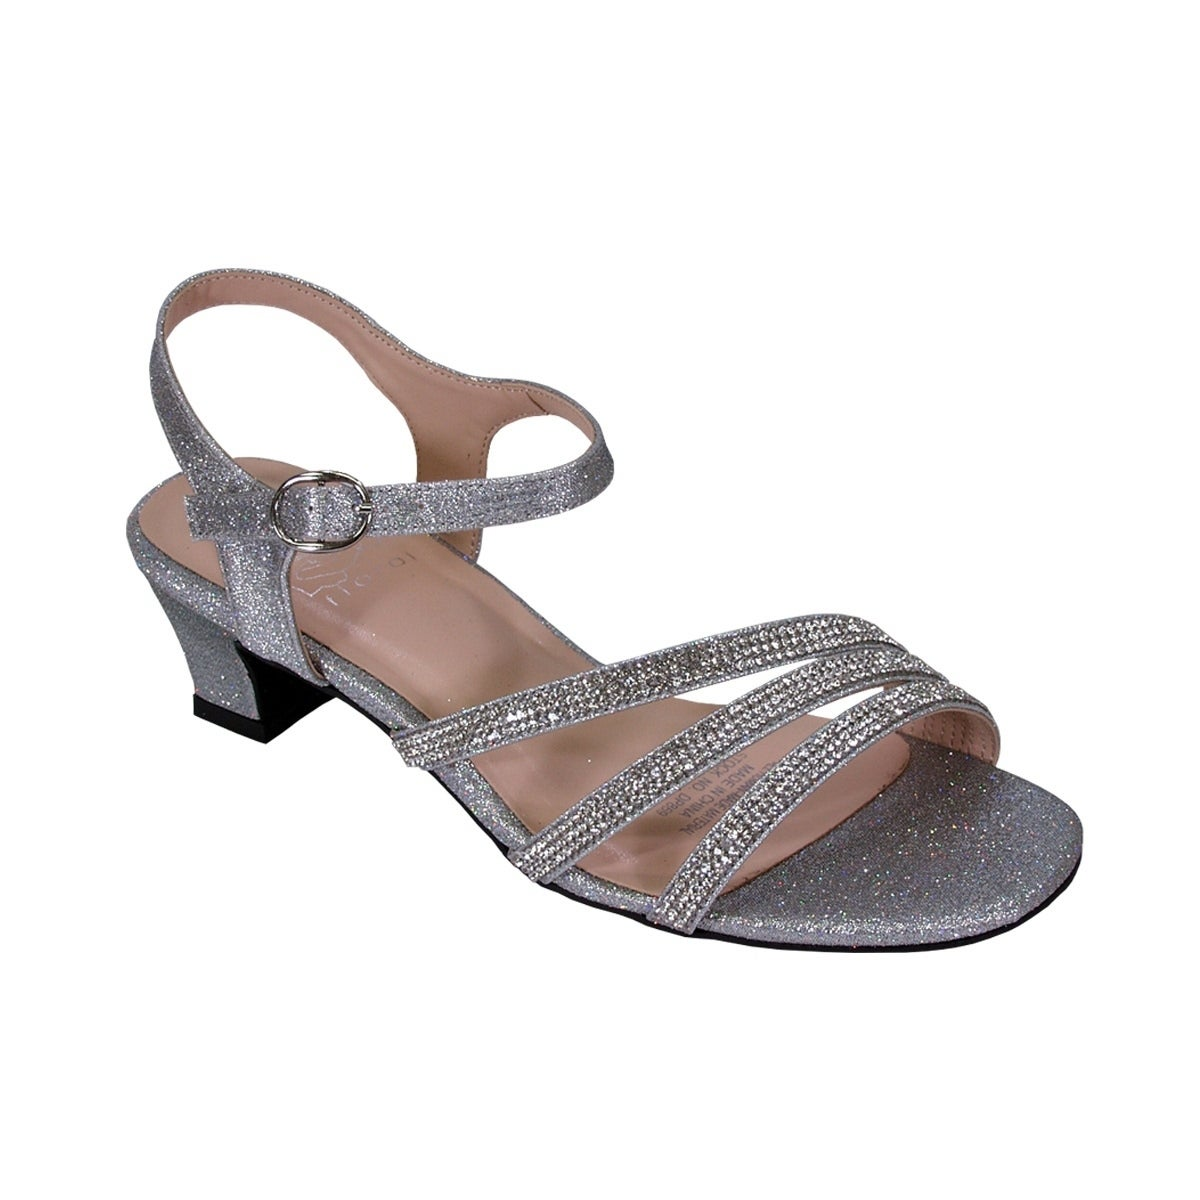 d6b5a8b96830 Shop FLORAL Jenna Women Extra Wide Width Glittery Rhinestone Straps Sandals  - Free Shipping Today - Overstock - 20005084